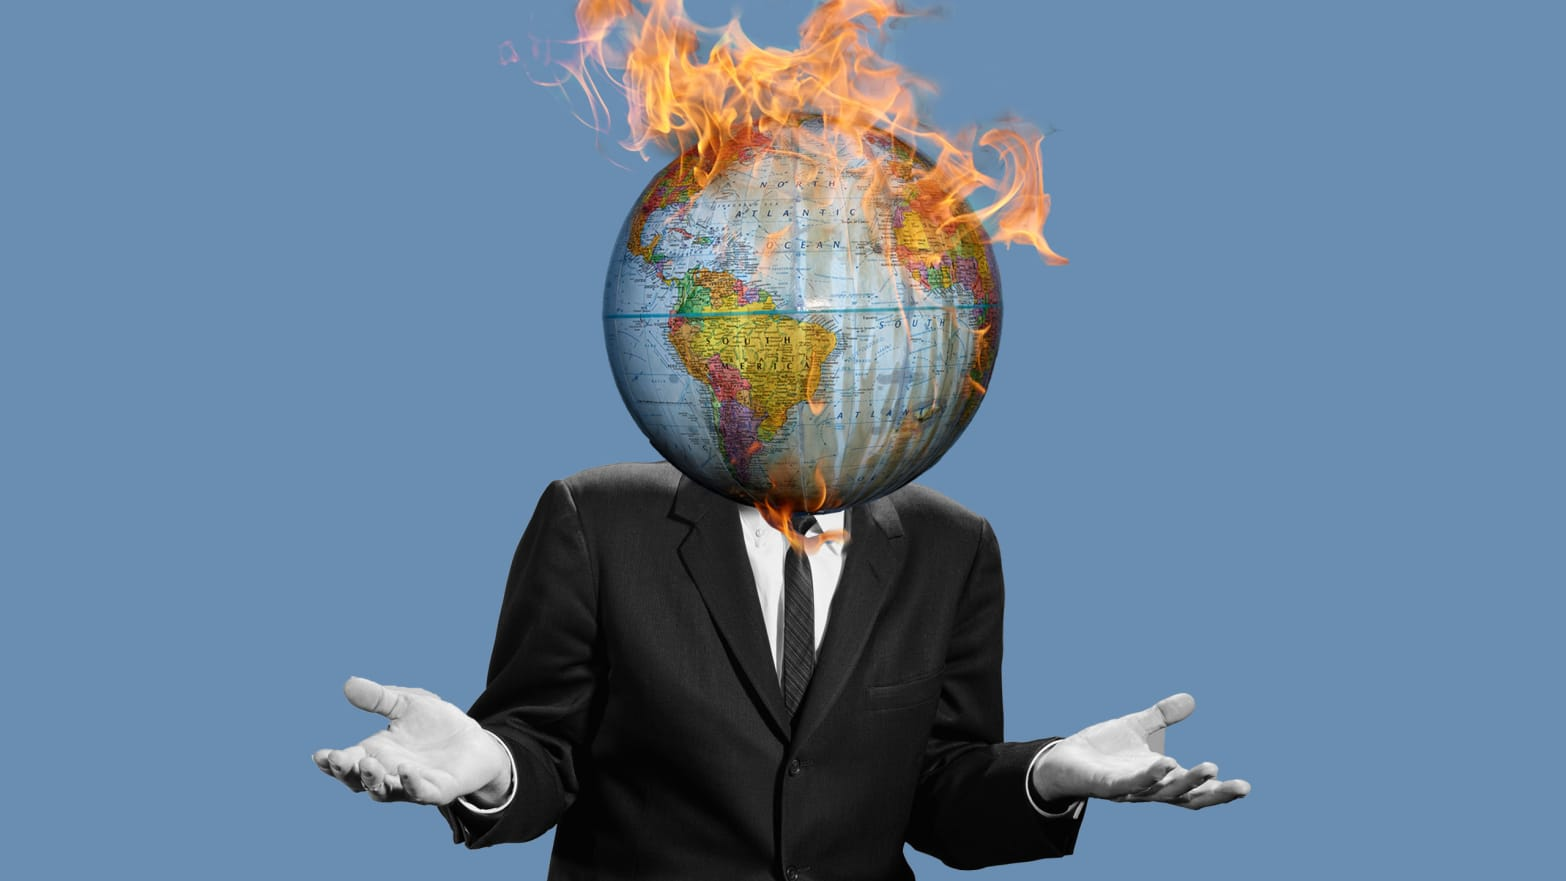 image of black and white man in a suit and tie with hands out in i don't know gesture and globe on fire instead of head epa environmental protection agency what report haven't heard of it ipcc united nations un